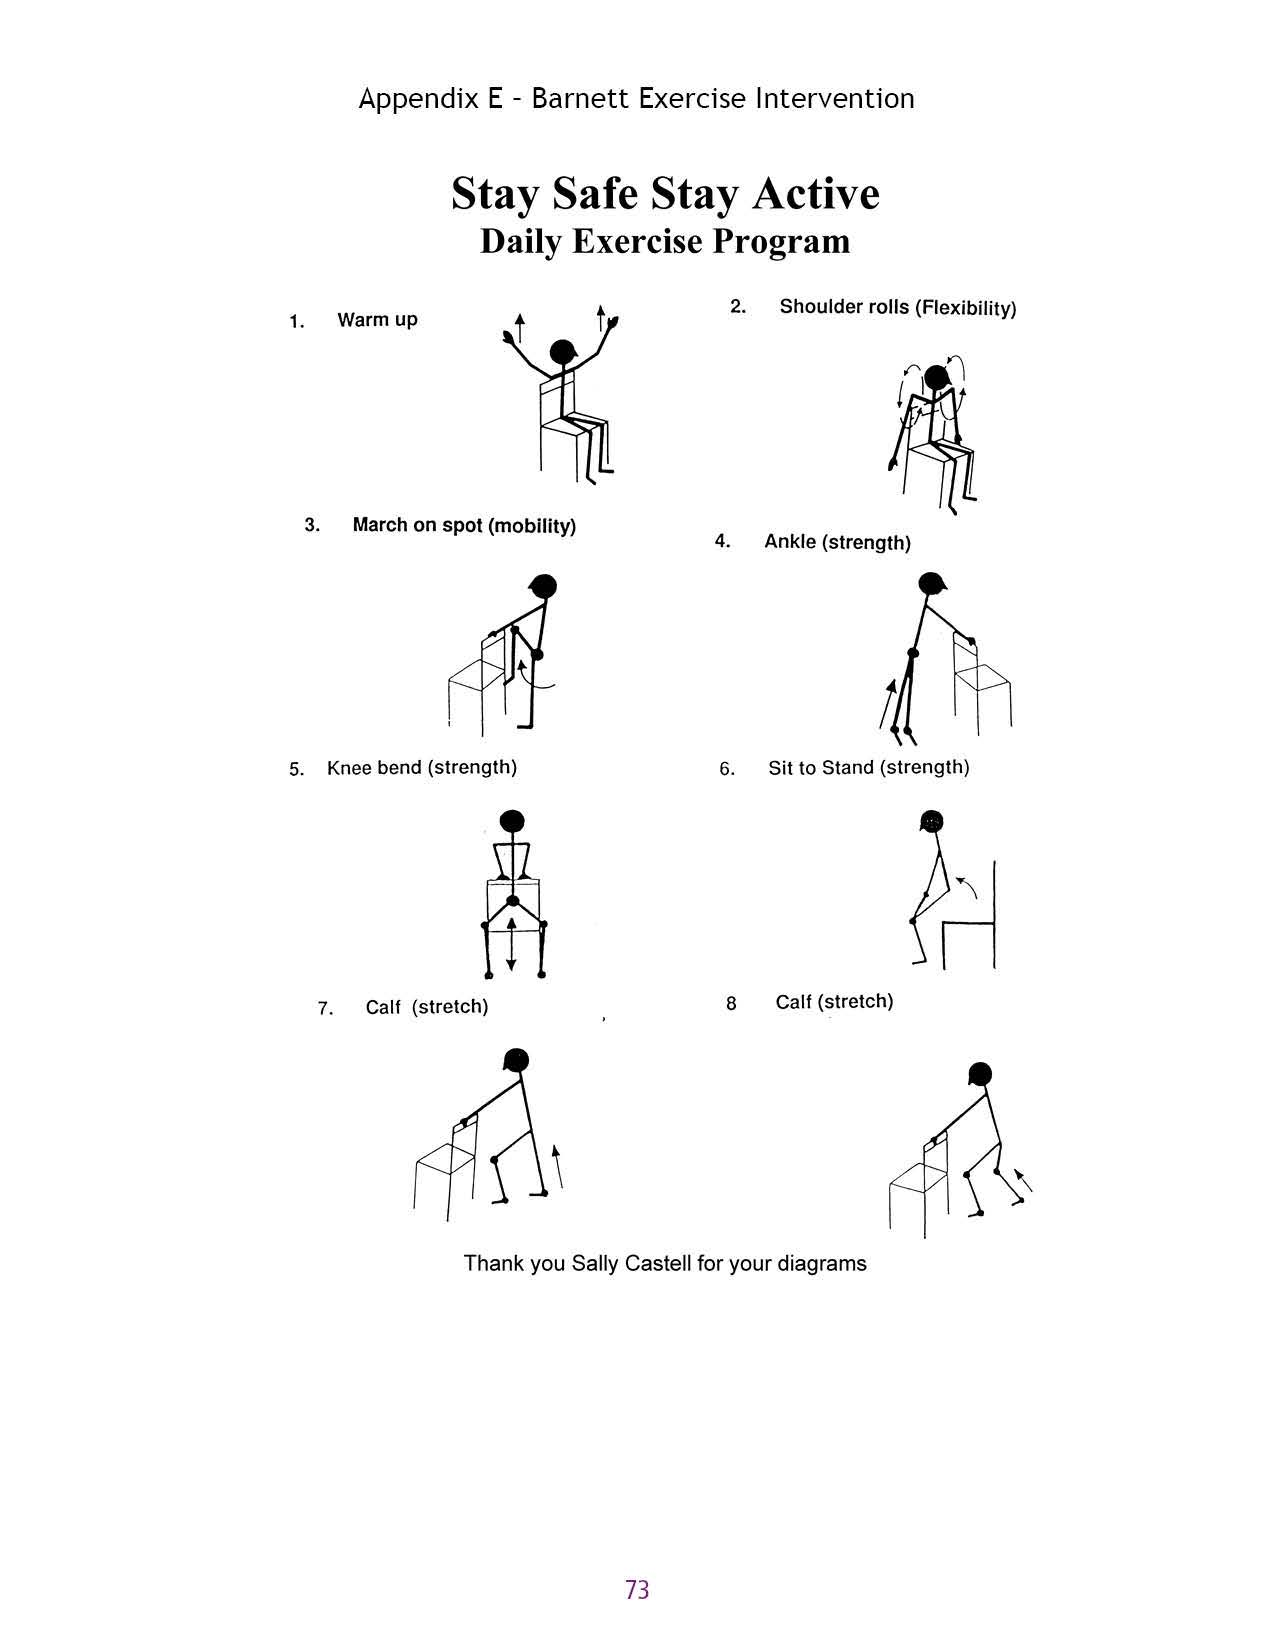 Appendix E - Barnett Exercise Intervention Stay Safe Stay Active Daily Exercise Program 1. Warm up t t 2. Shoulder rolls (Flexibility) 3.